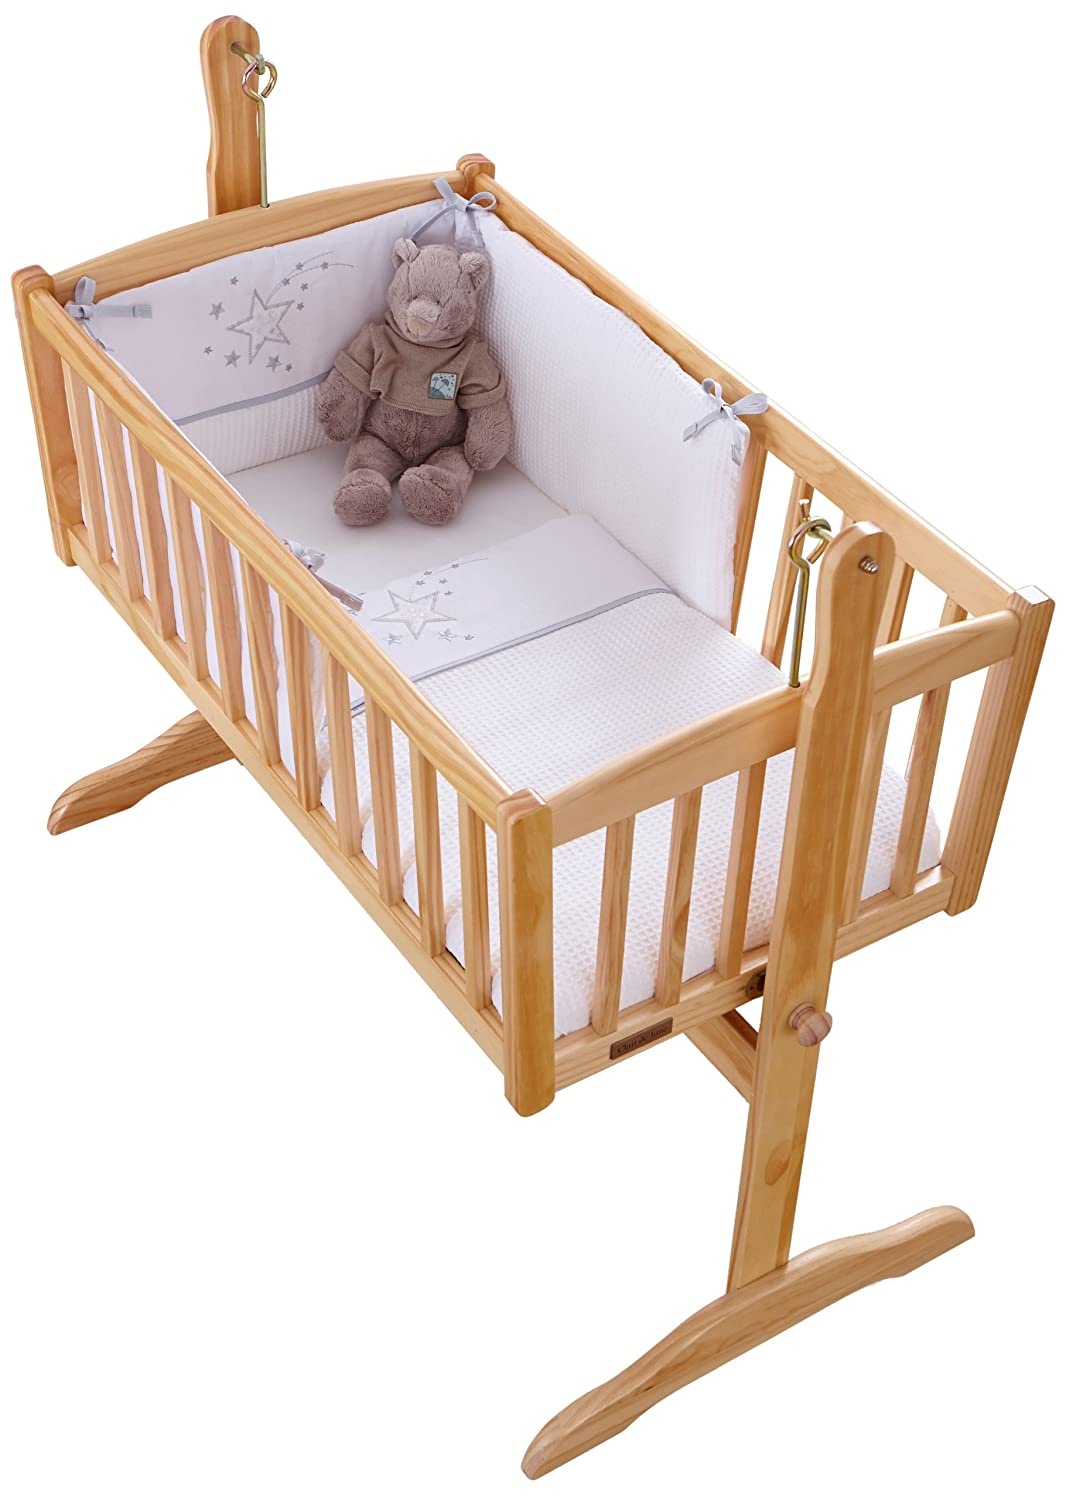 Clair de Lune Stardust Rocking Crib/Cradle Quilt and Bumper Set (White) BabyCenter CL4816W